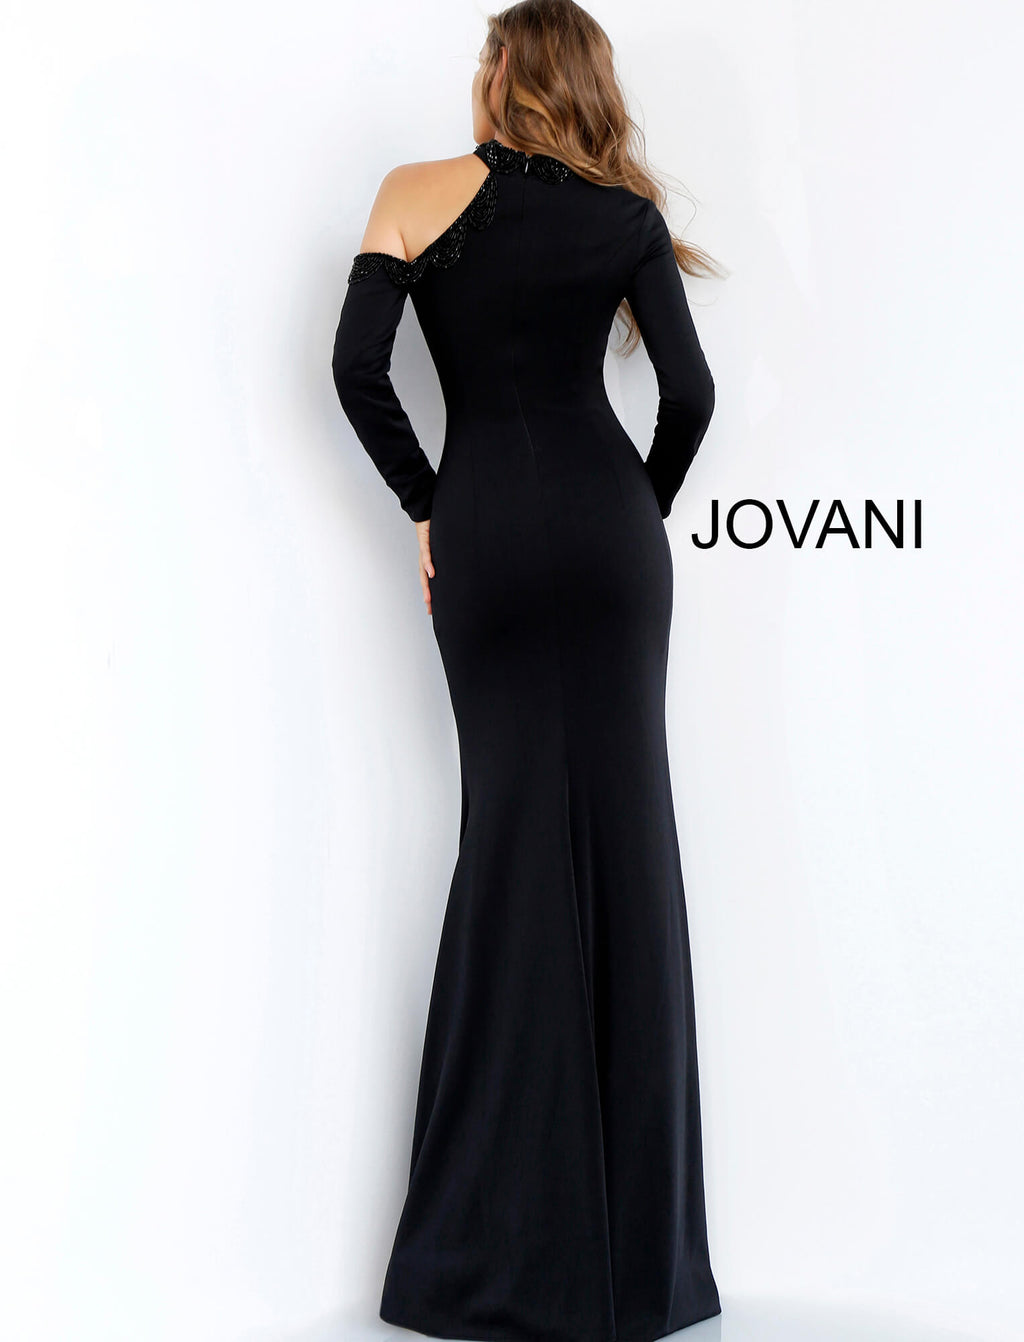 JOVANI 60937 Long Sleeve High Neck Evening Dress